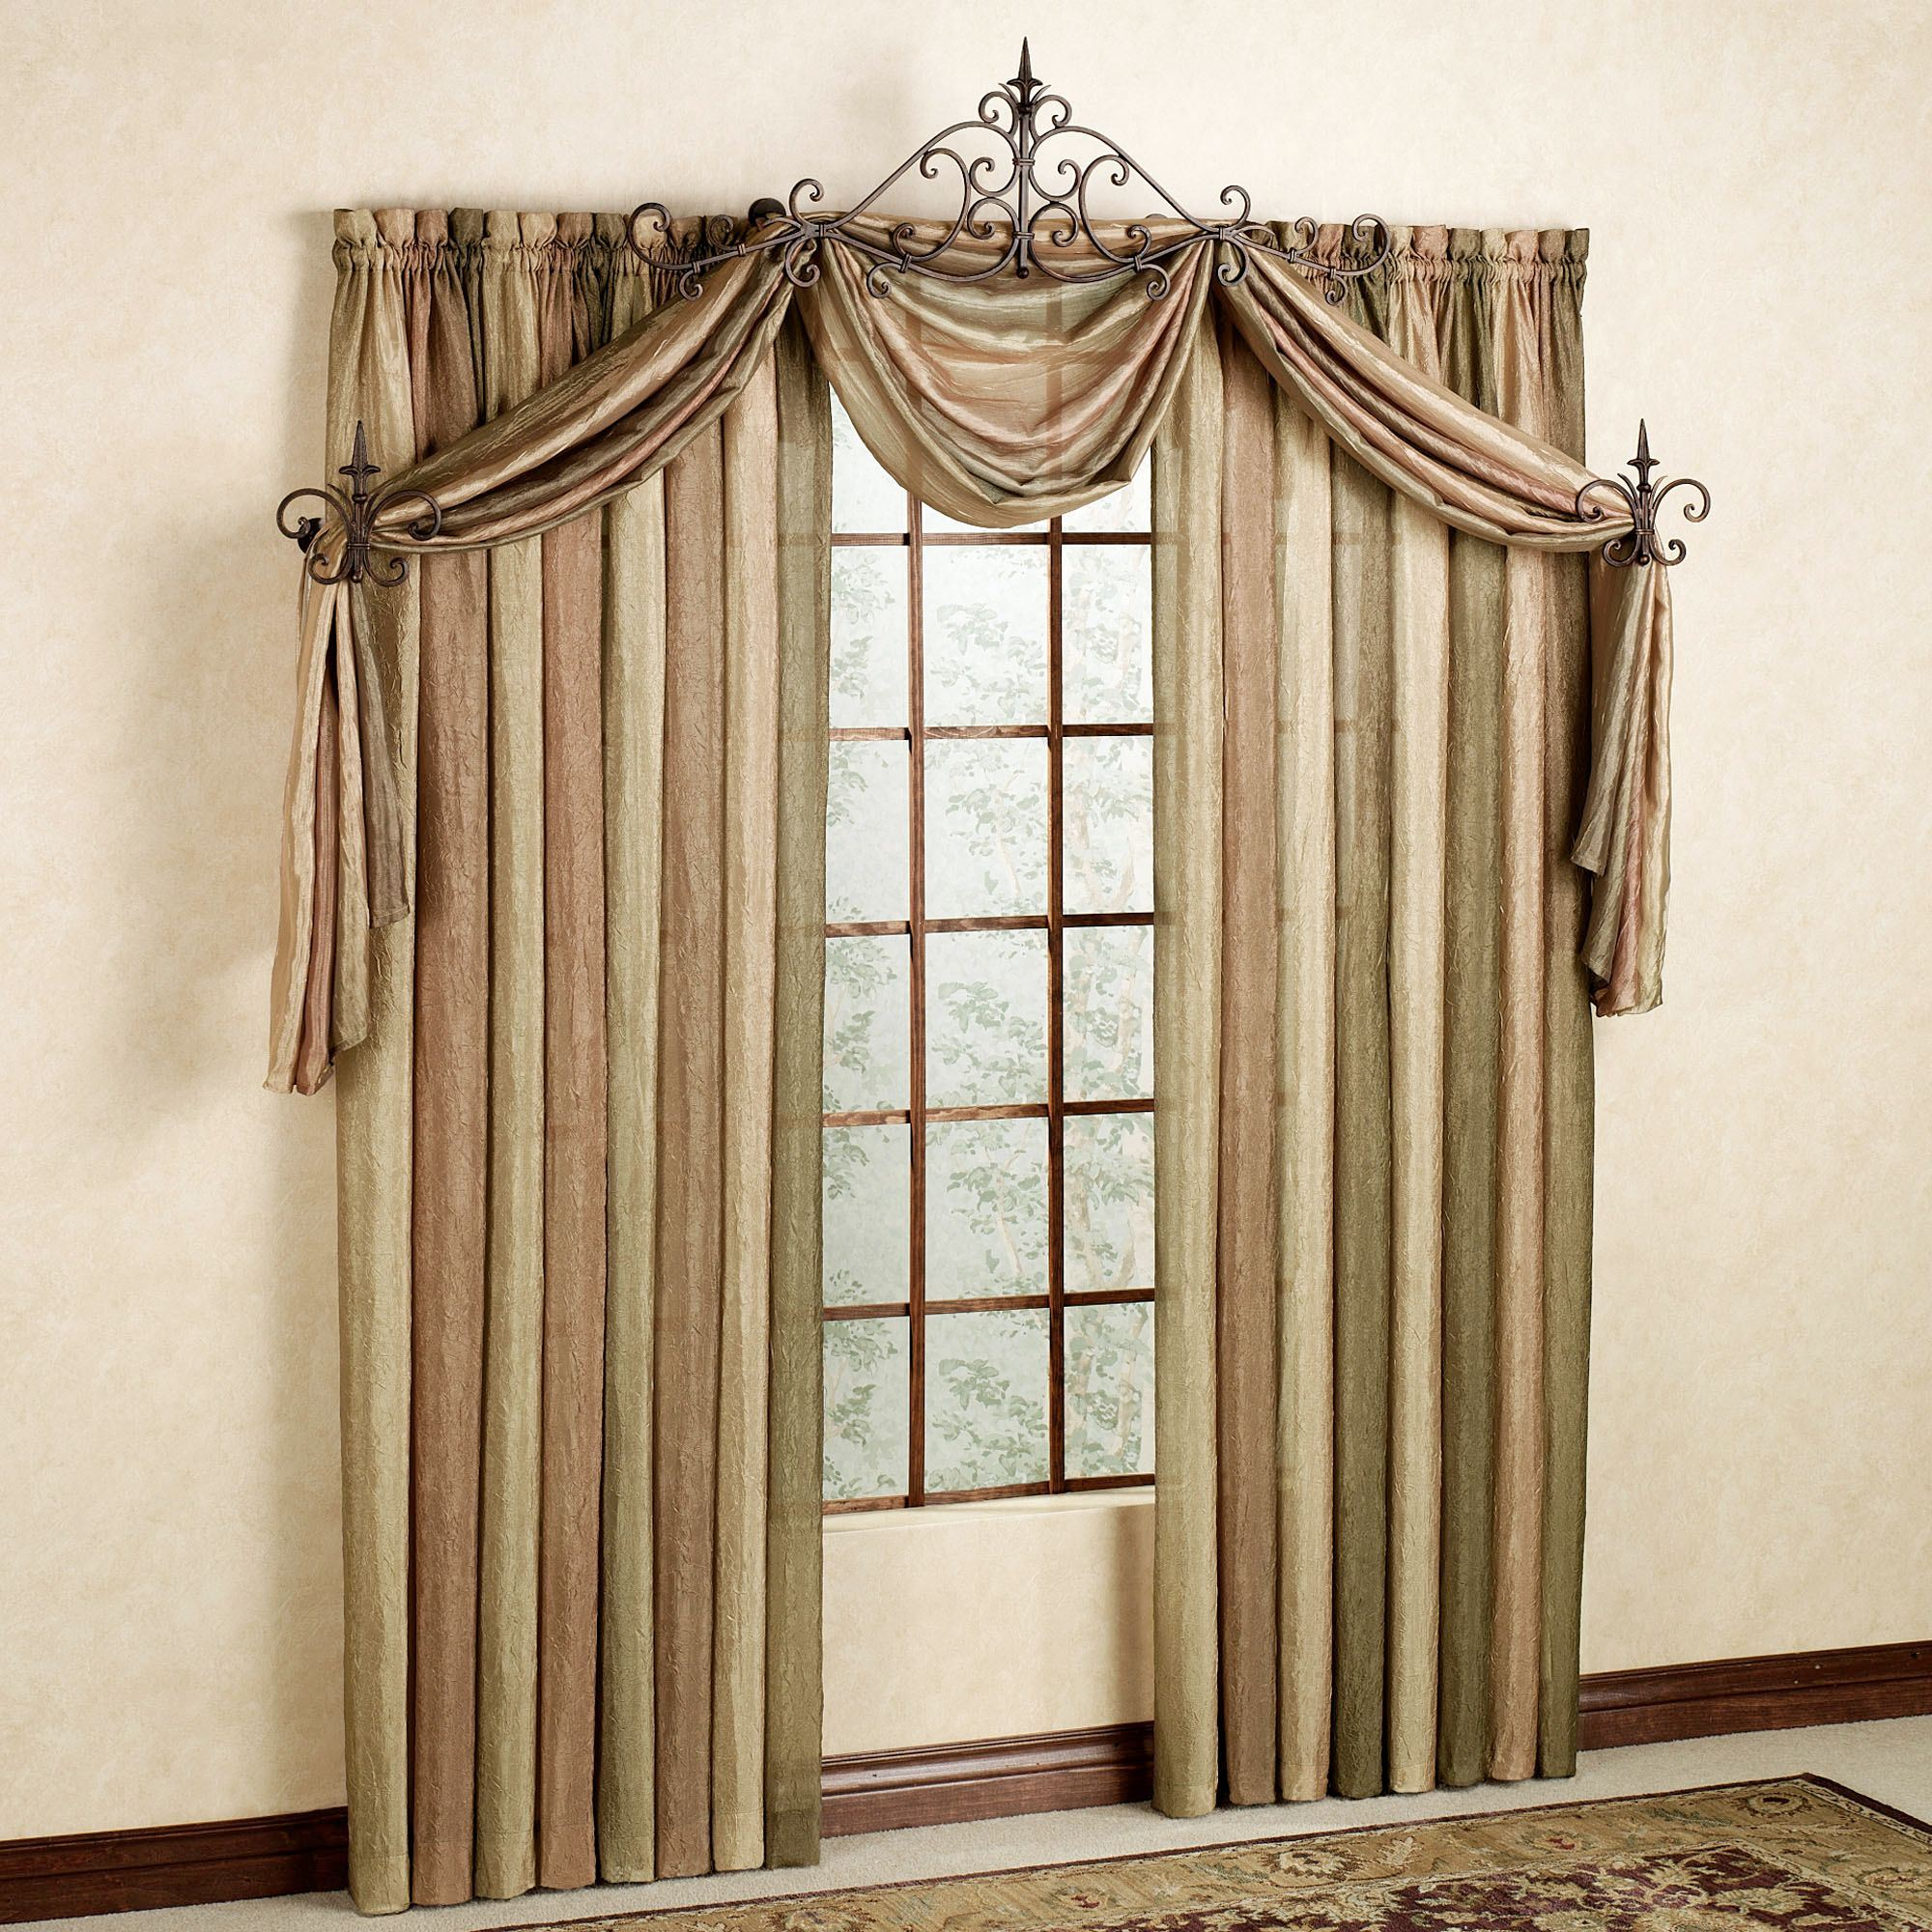 damask valance valances treatments wave x folk red ideas inch scarf treatment window